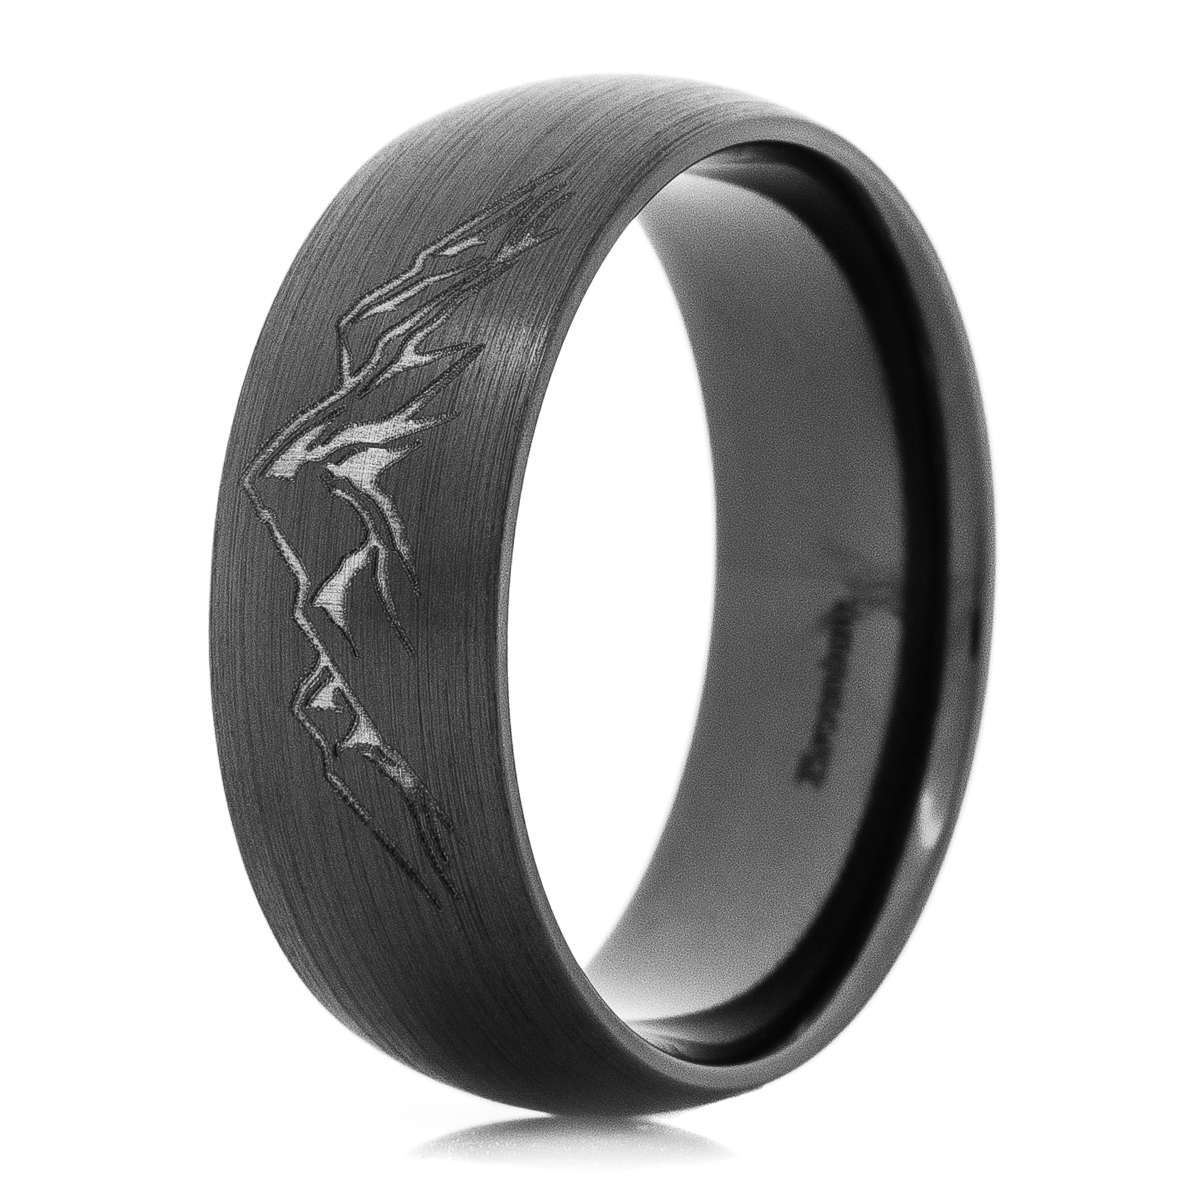 Men's Black Zirconium Laser Carved Mountain Ring